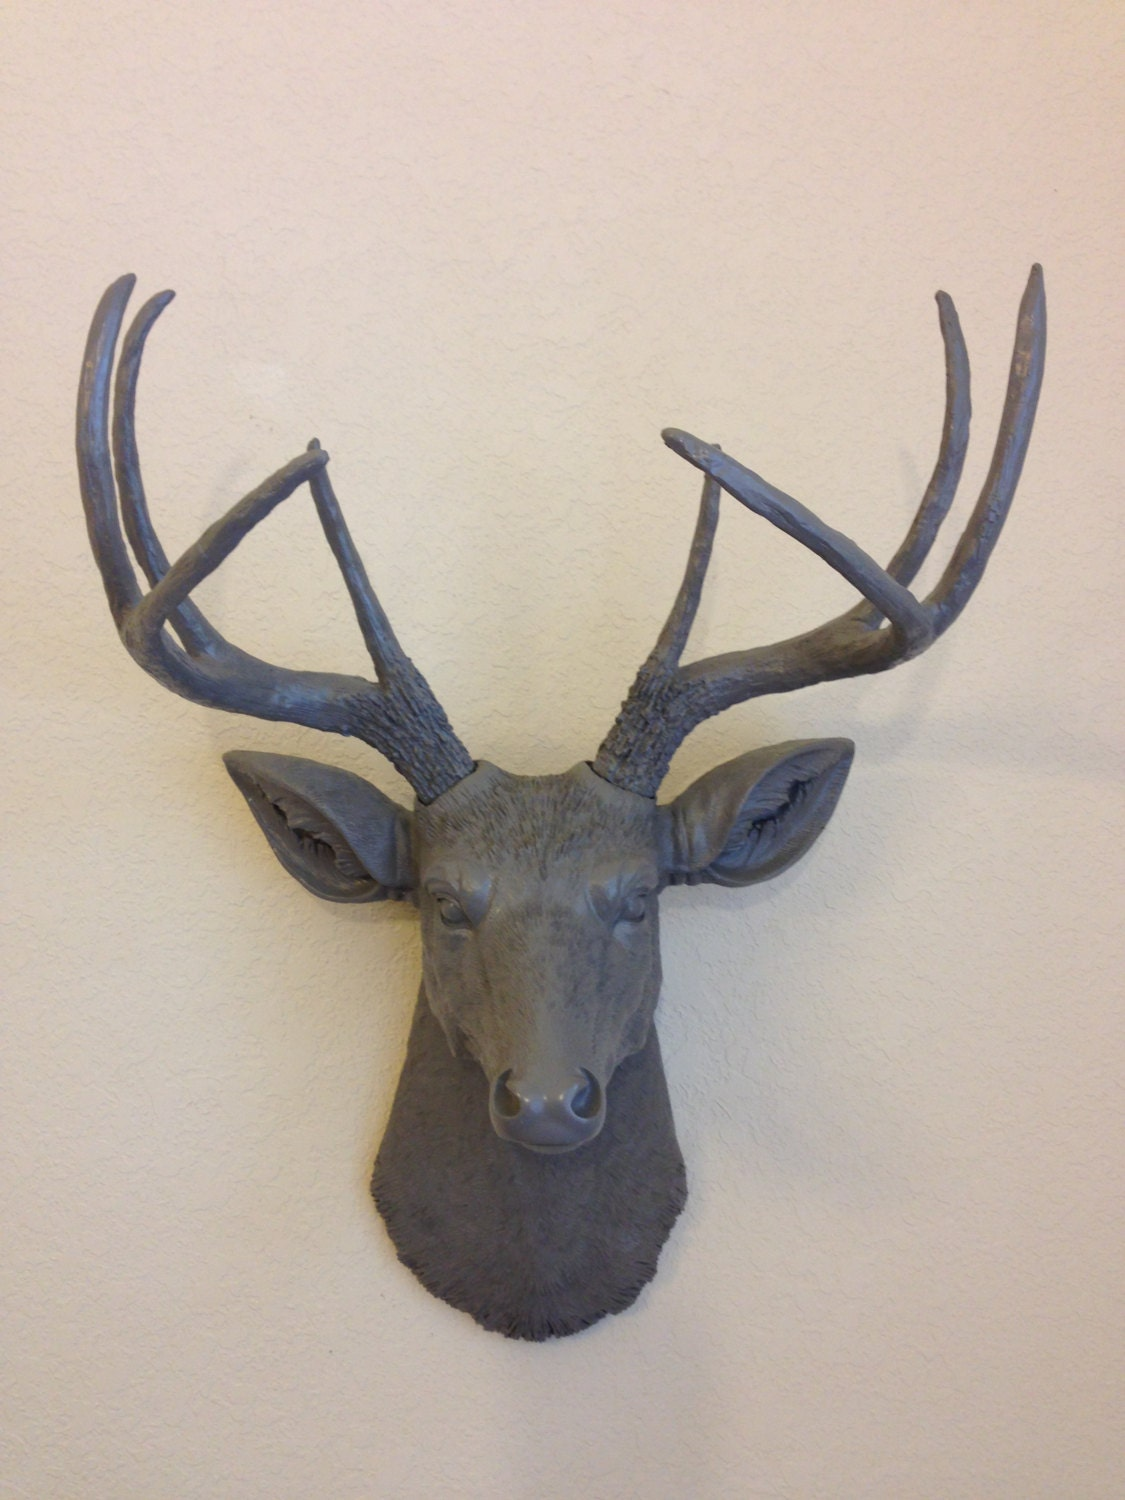 Faux Deer Head Hunting Trophy With Antlers By Foundandsouled